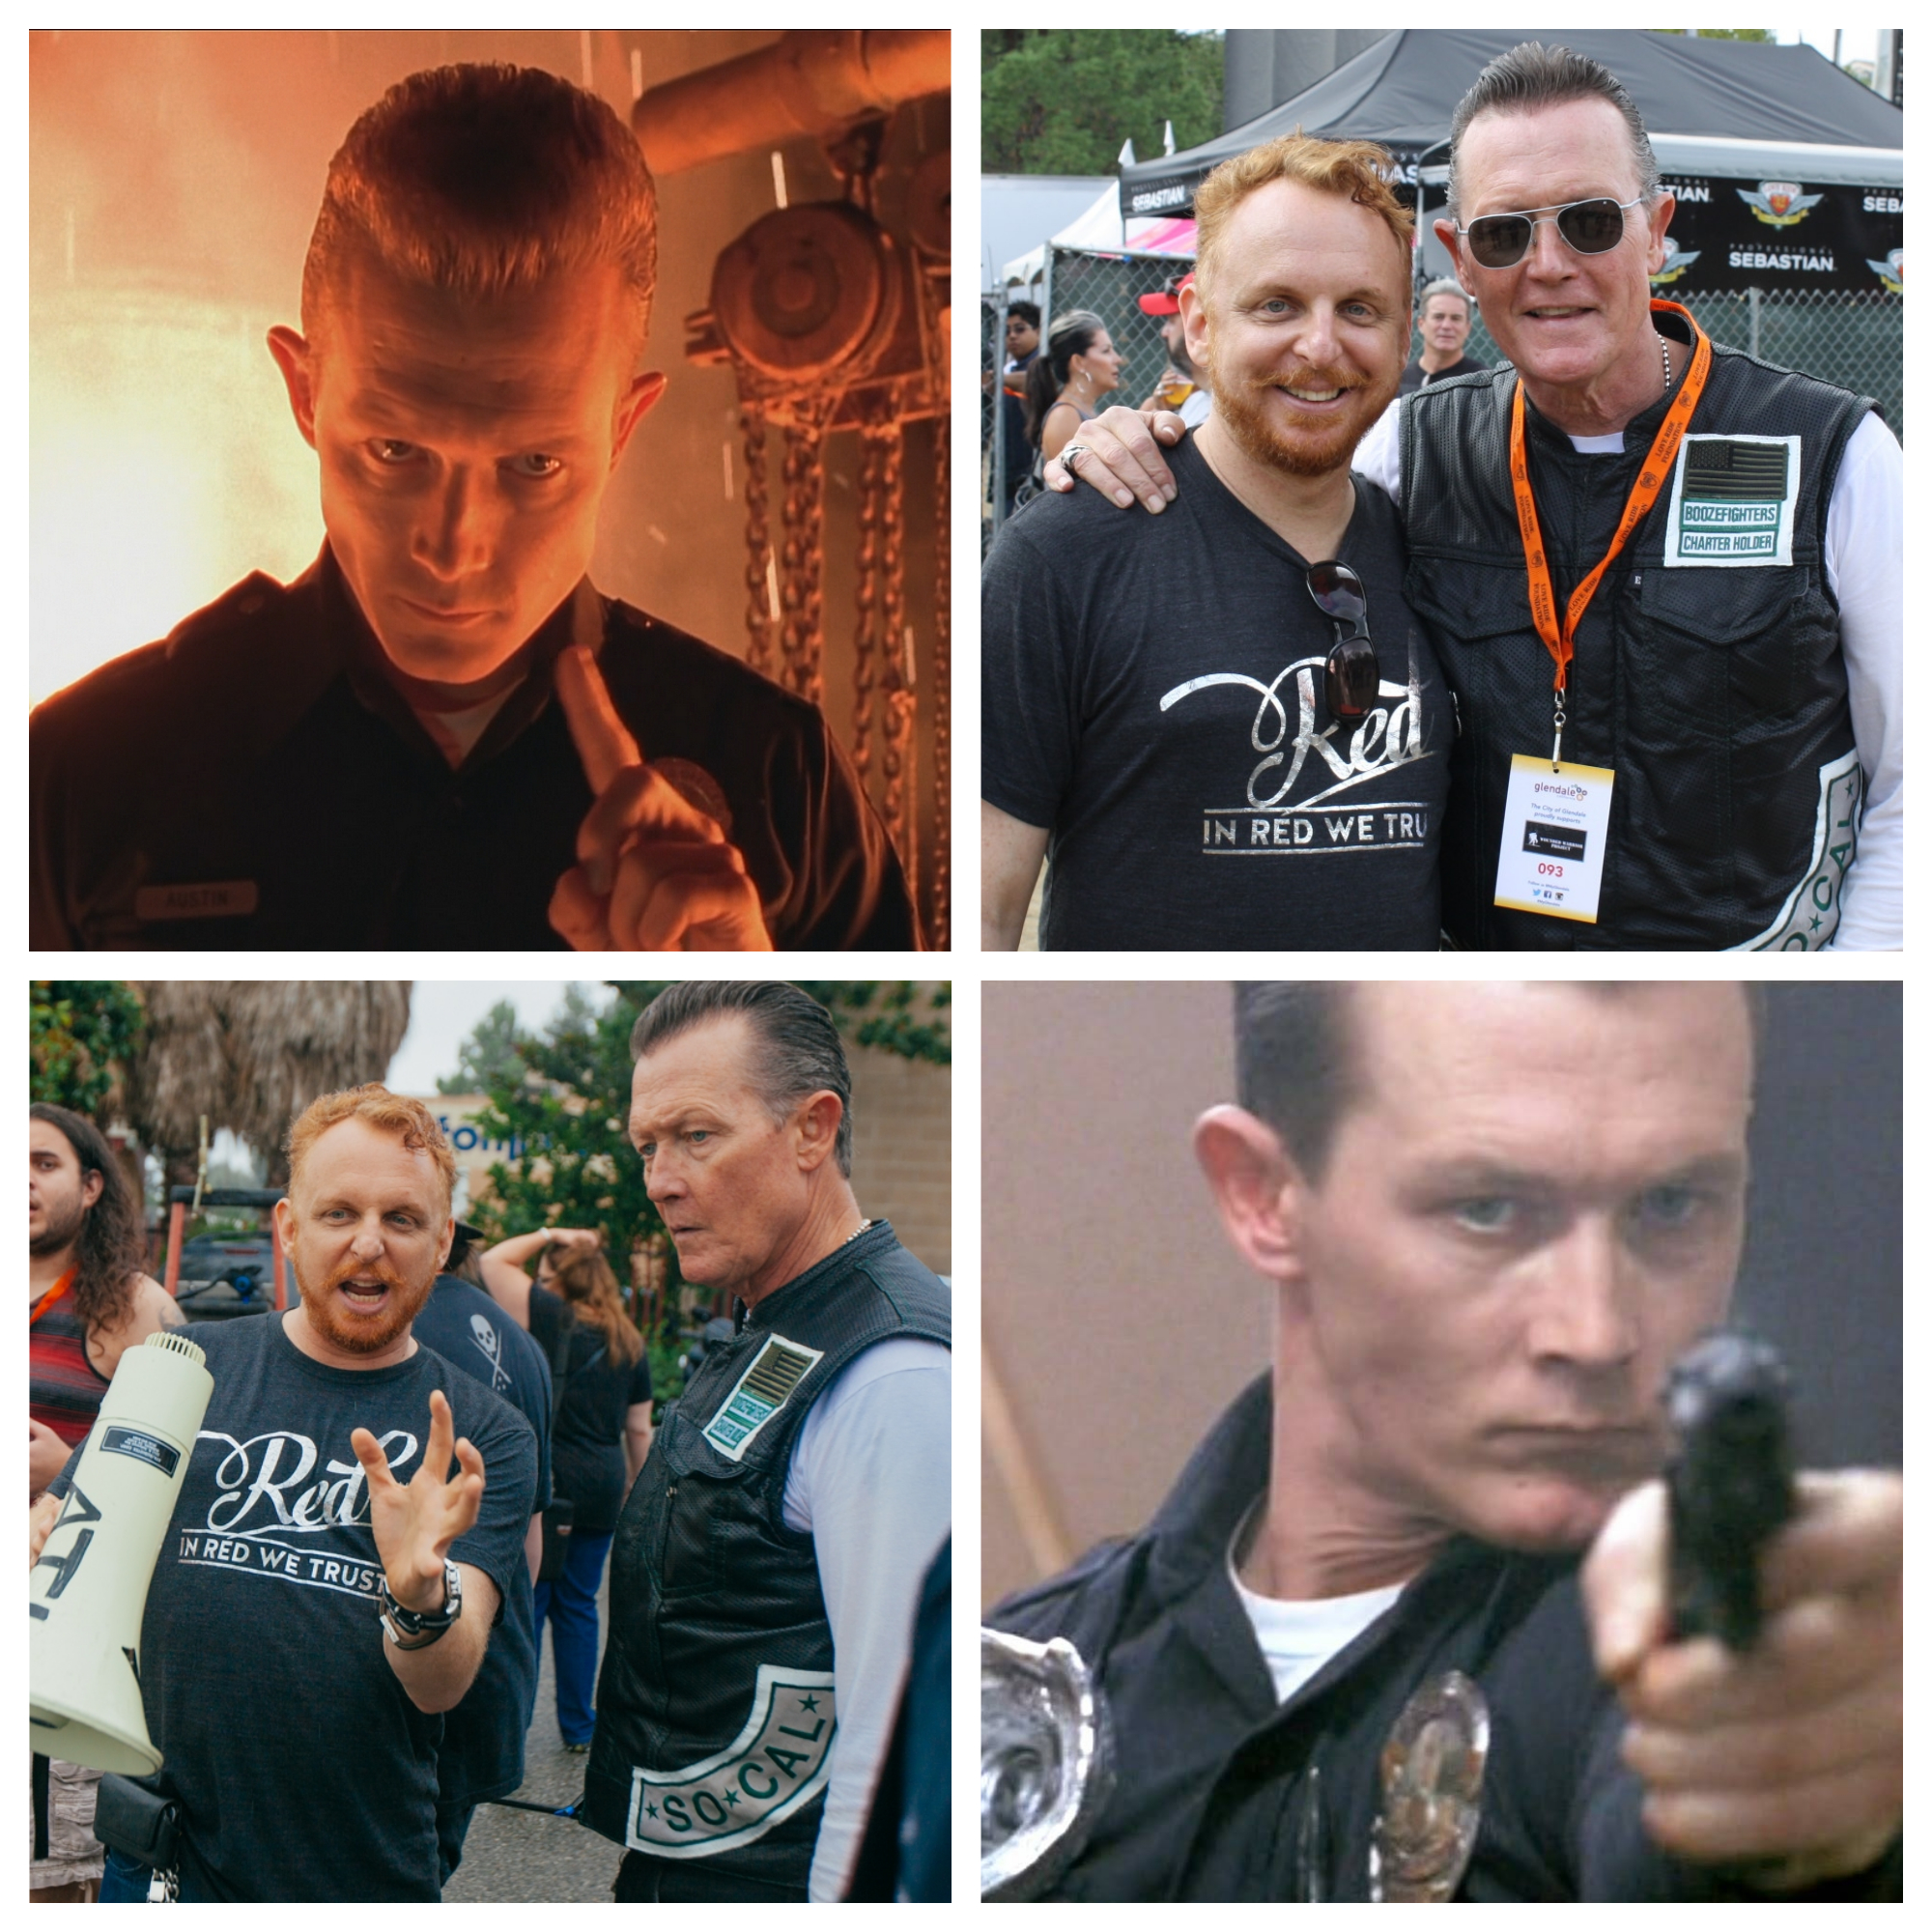 Robert_Patrick_Collage.jpg